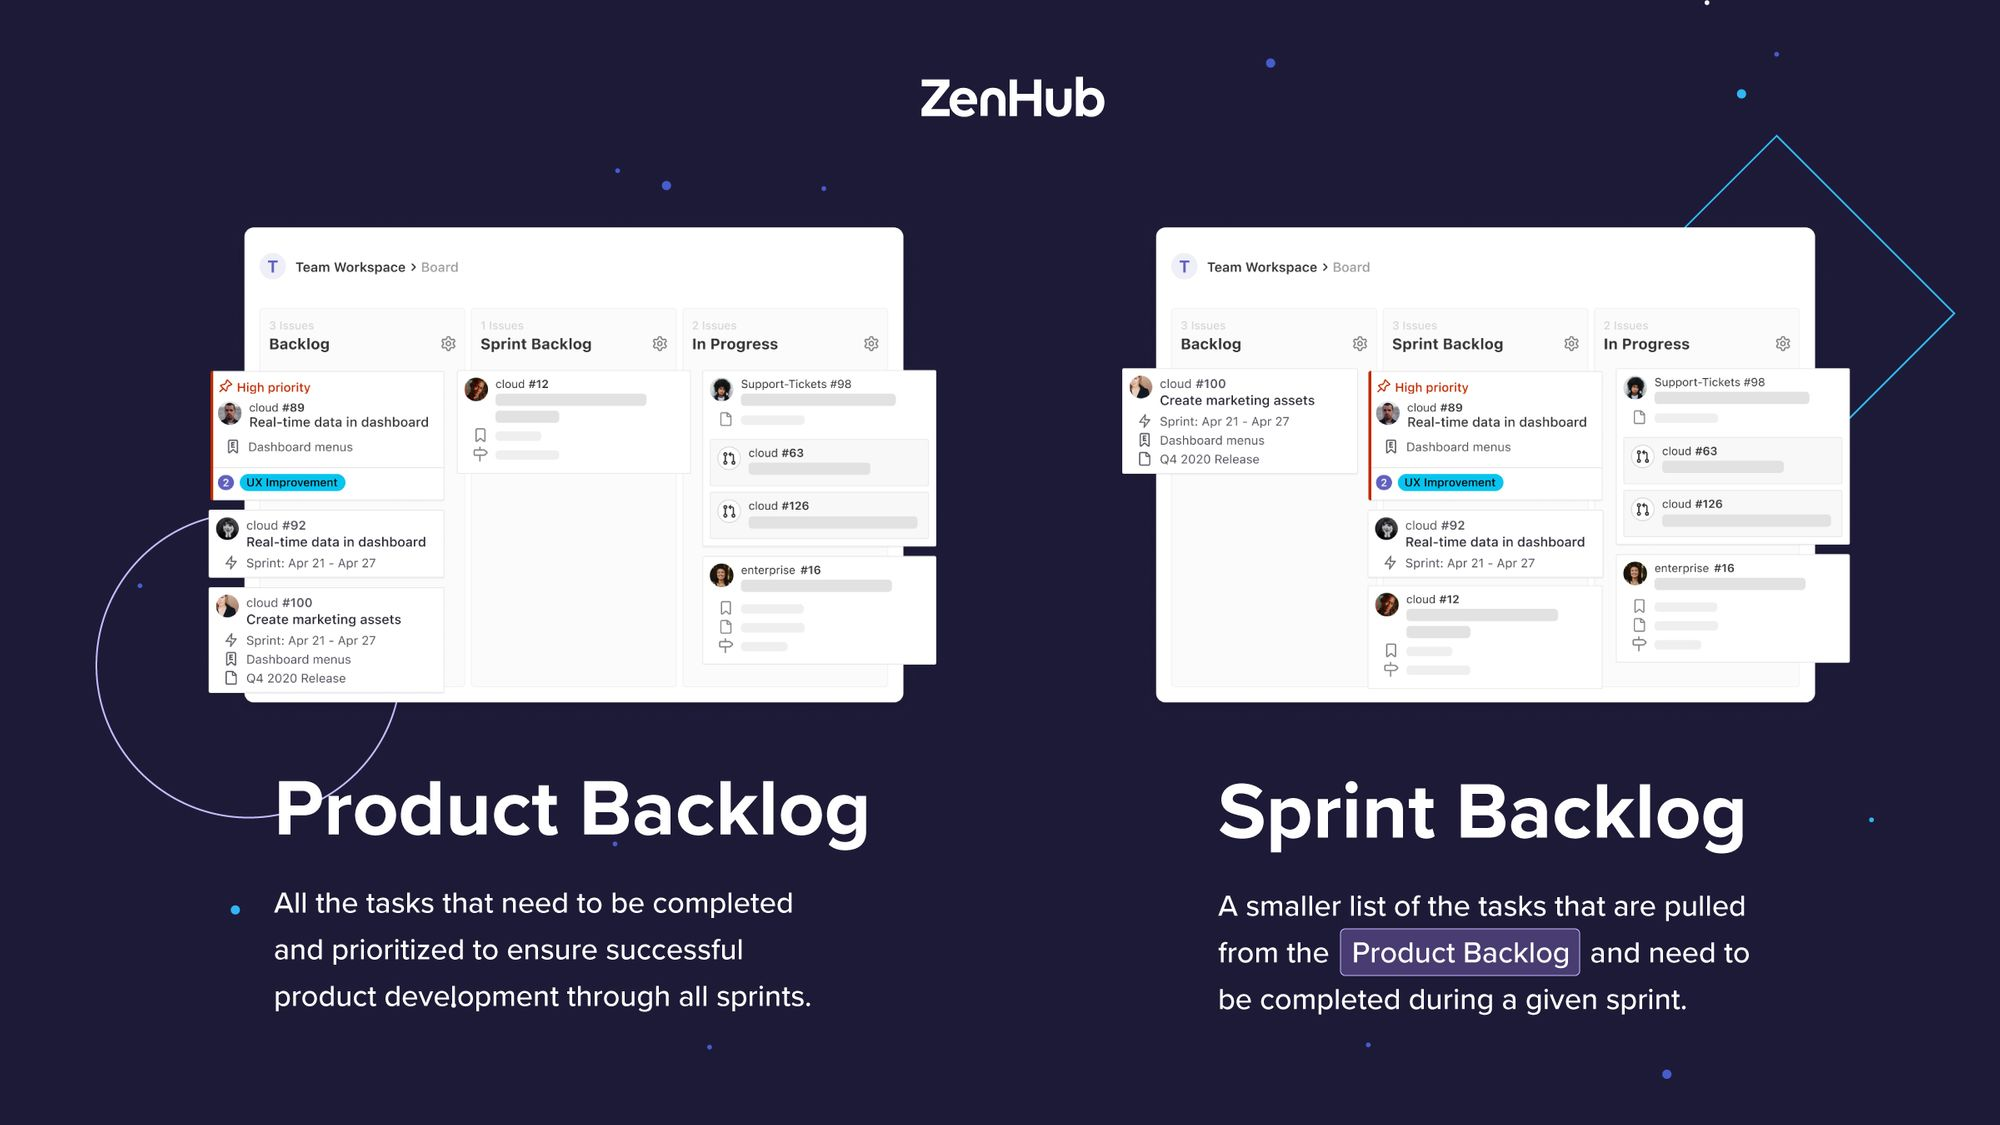 comparison between the purpose of a product backlog and a sprint backlog